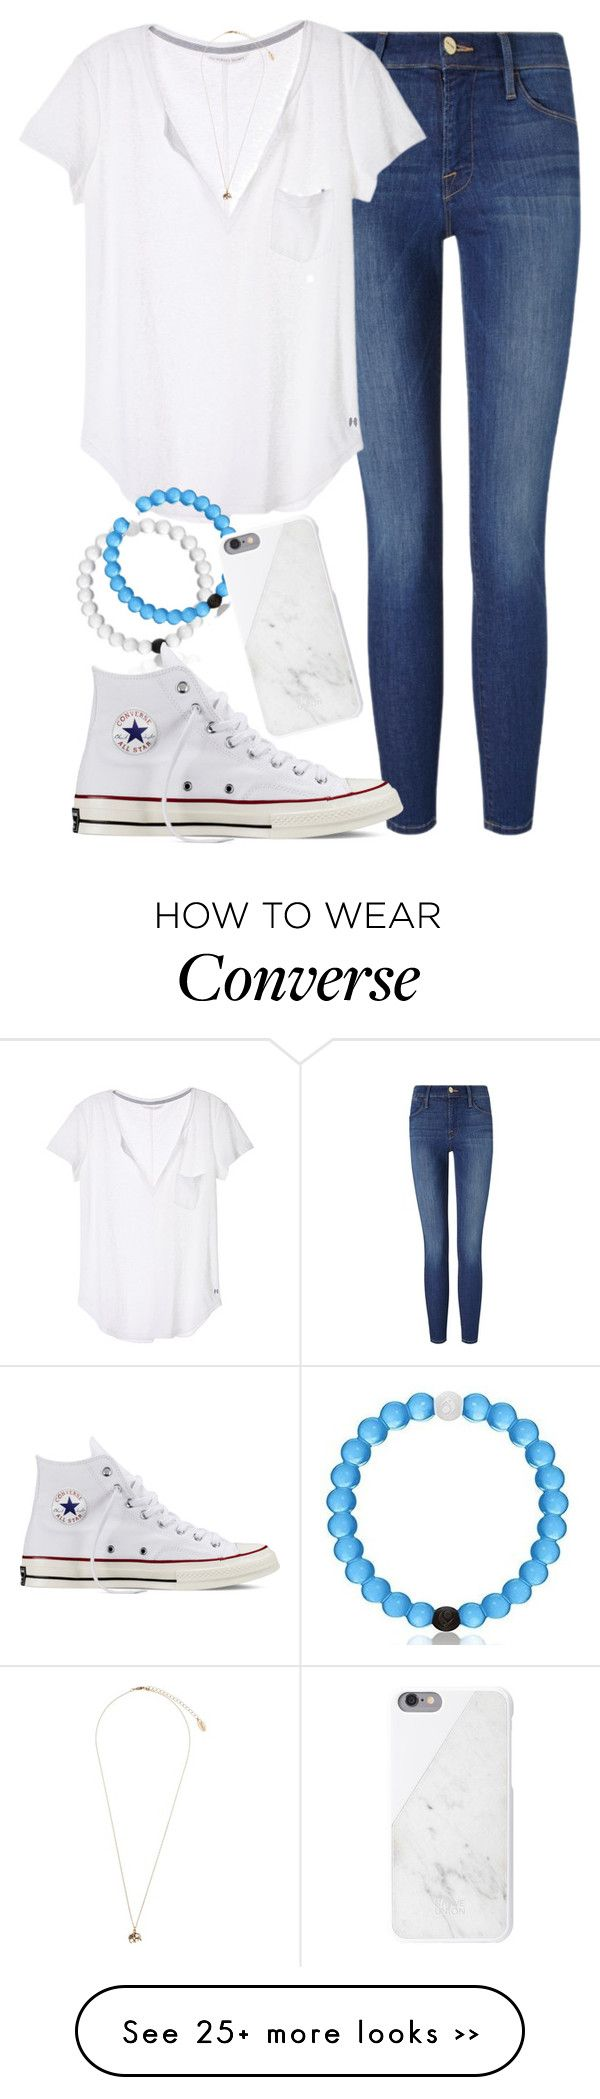 """""""No Frills"""" by red-velvet-n-pearls on Polyvore featuring Frame Denim, Victoria's Secret, Topshop, Converse and Native Union"""